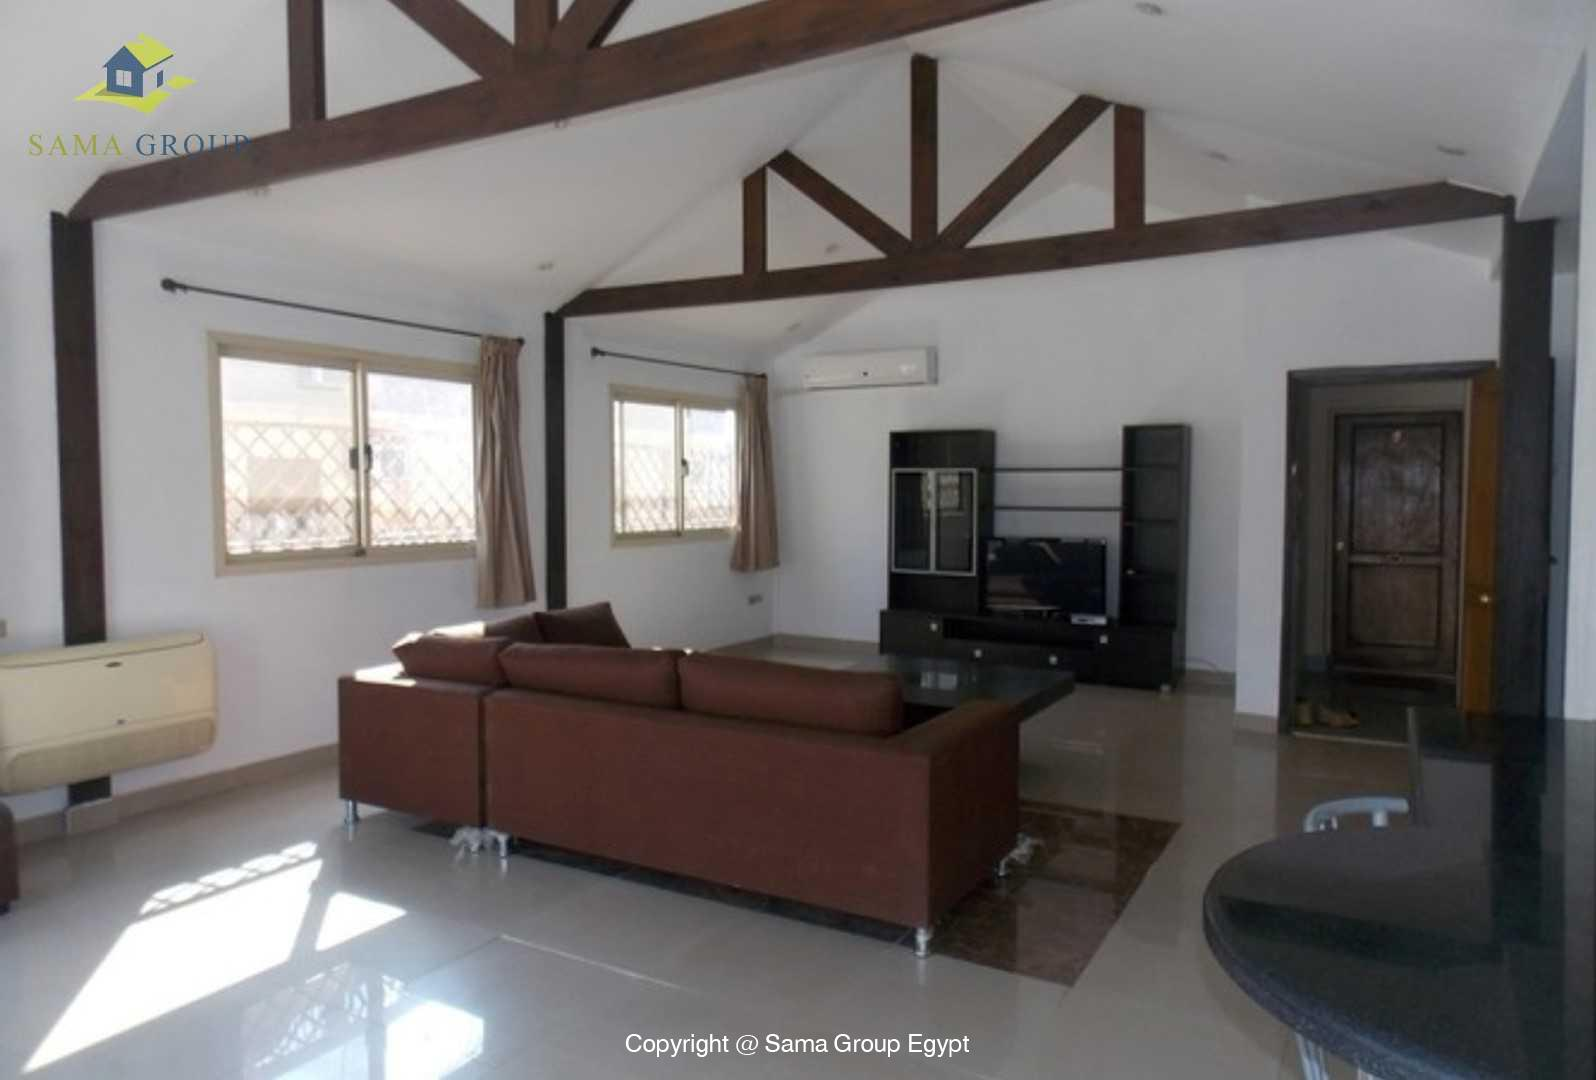 Penthouse For Rent In Maadi Sarayat,Modern Furnished,Penthouse NO #13